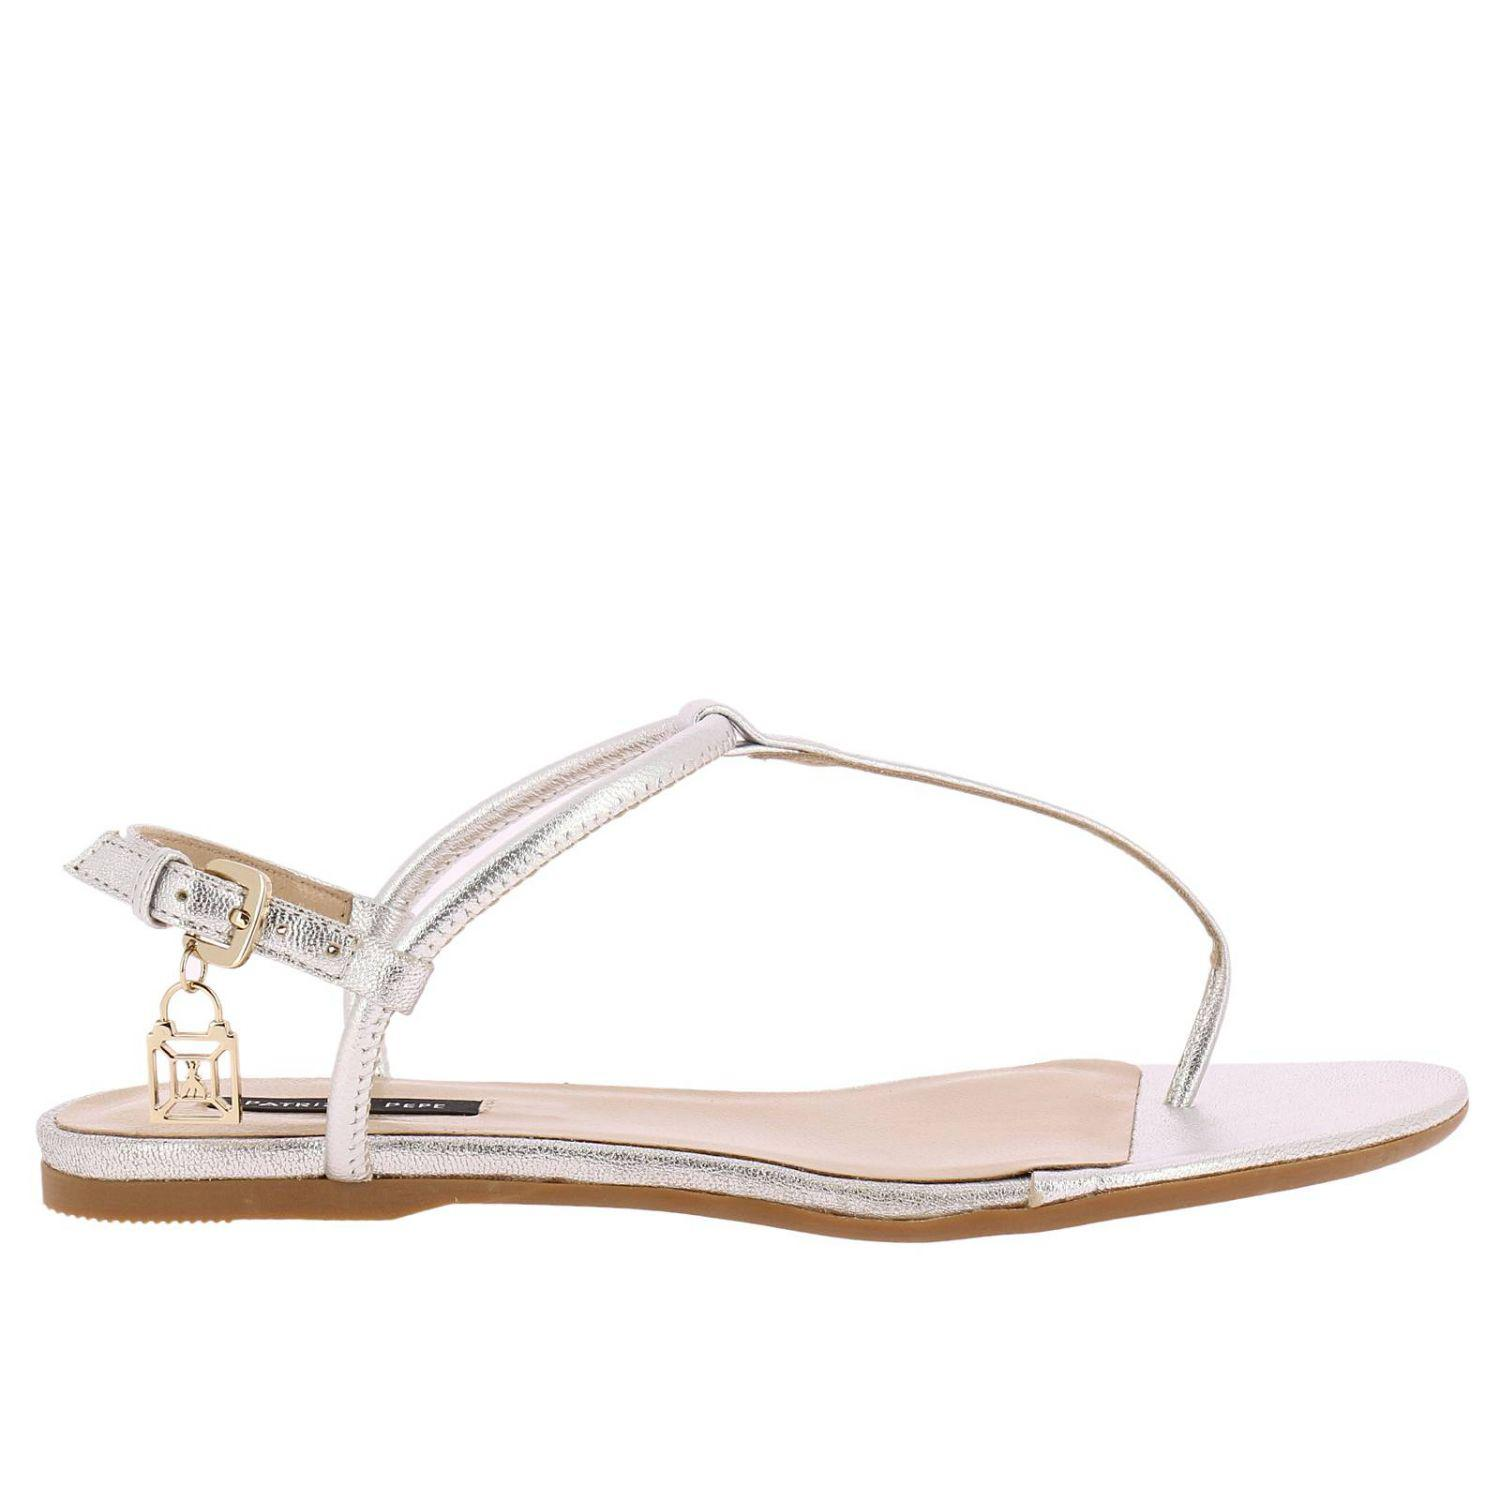 a6ac5944067 Patrizia Pepe Flat Sandals Shoes Women in Metallic - Lyst